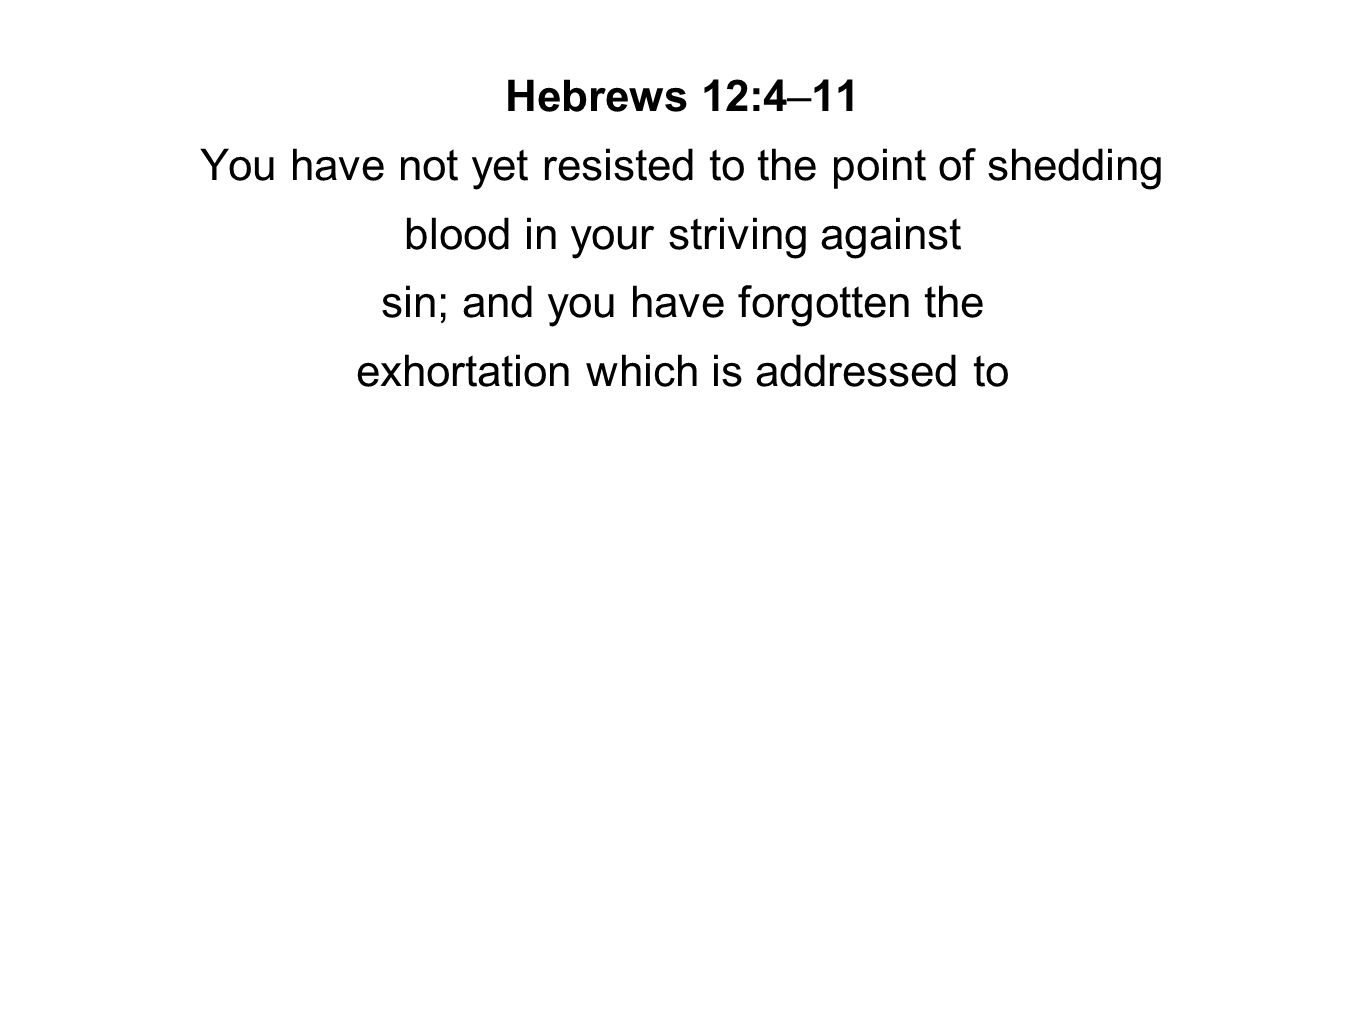 Hebrews 12:4–11 You have not yet resisted to the point of shedding blood in your striving against sin; and you have forgotten the exhortation which is addressed to